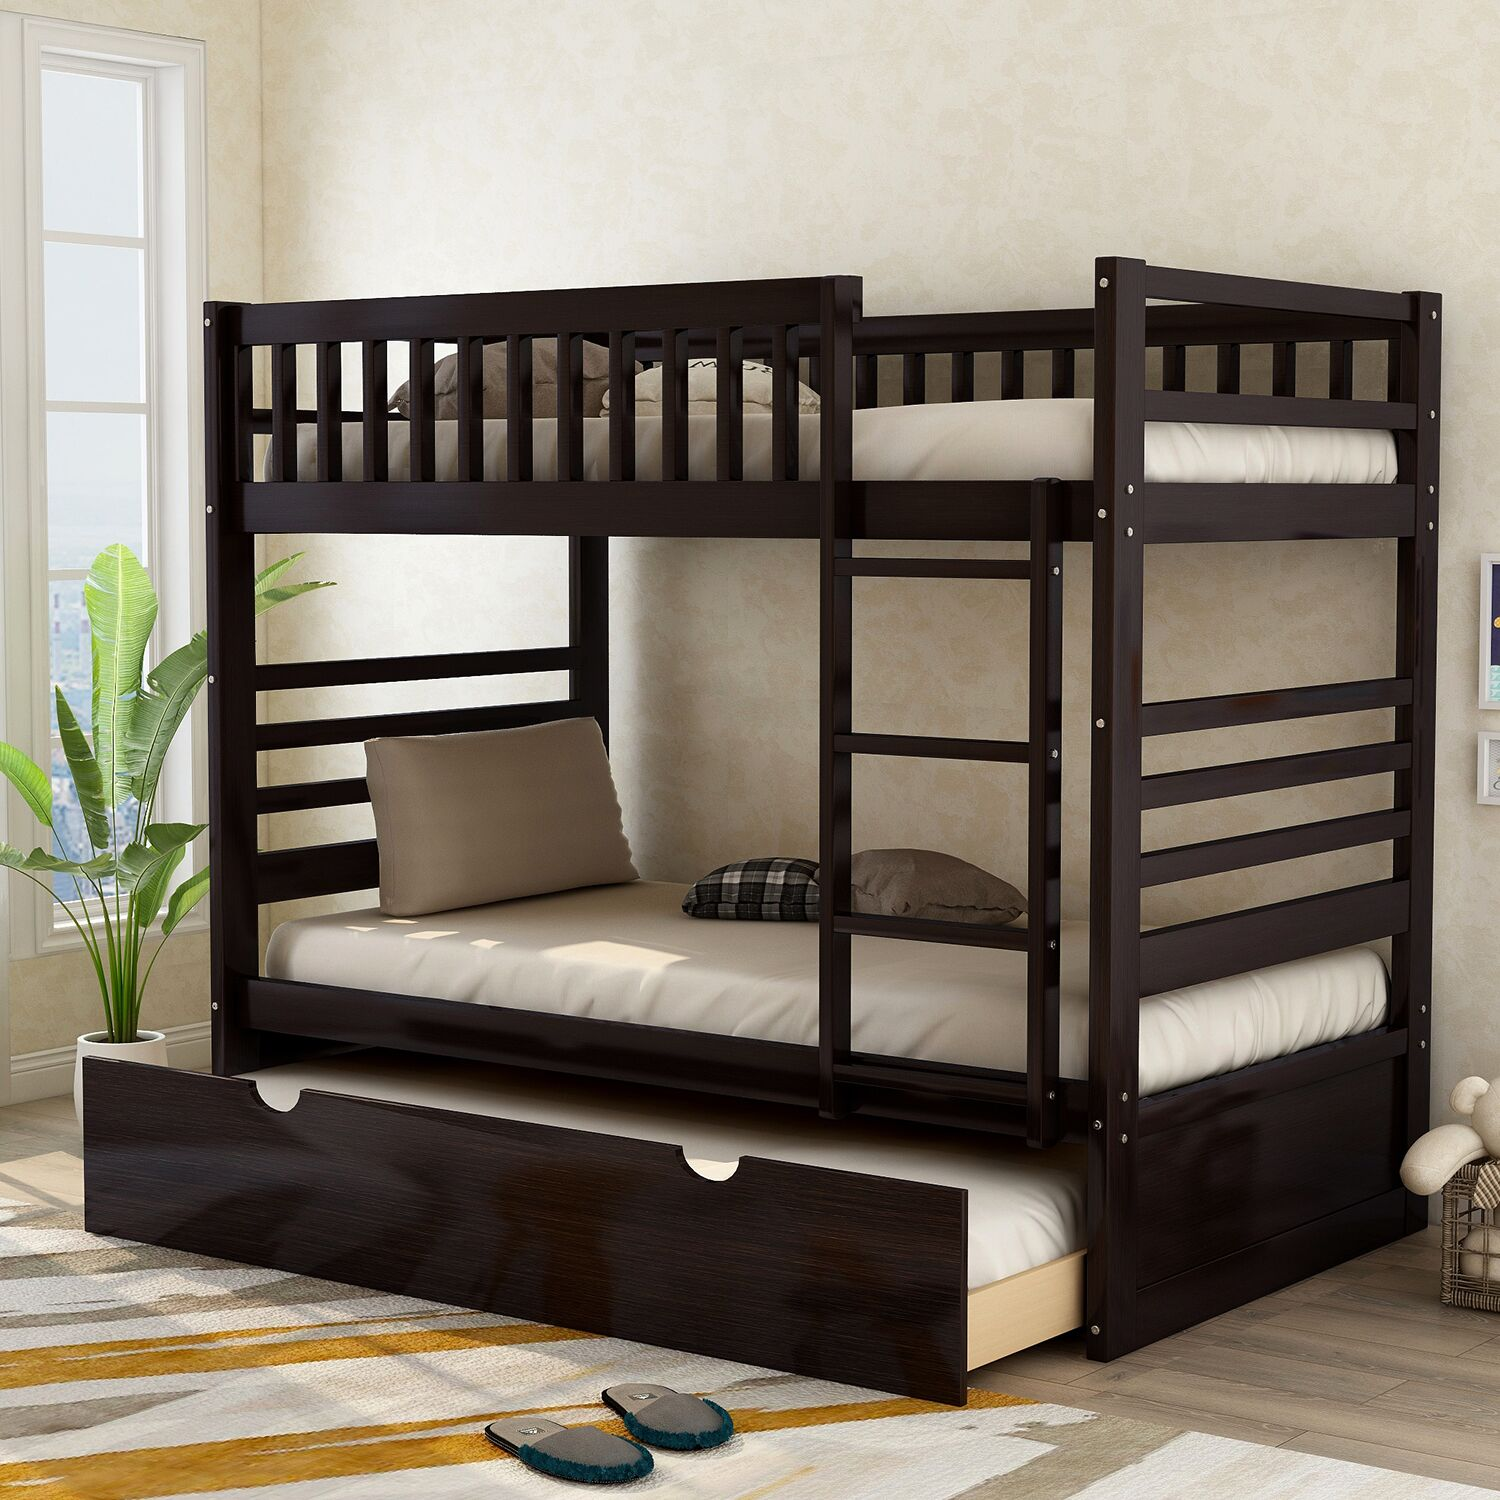 Picture of: Merax Wood Bunk Bed Twin Over Twin With Trundle Espresso Walmart Com Walmart Com